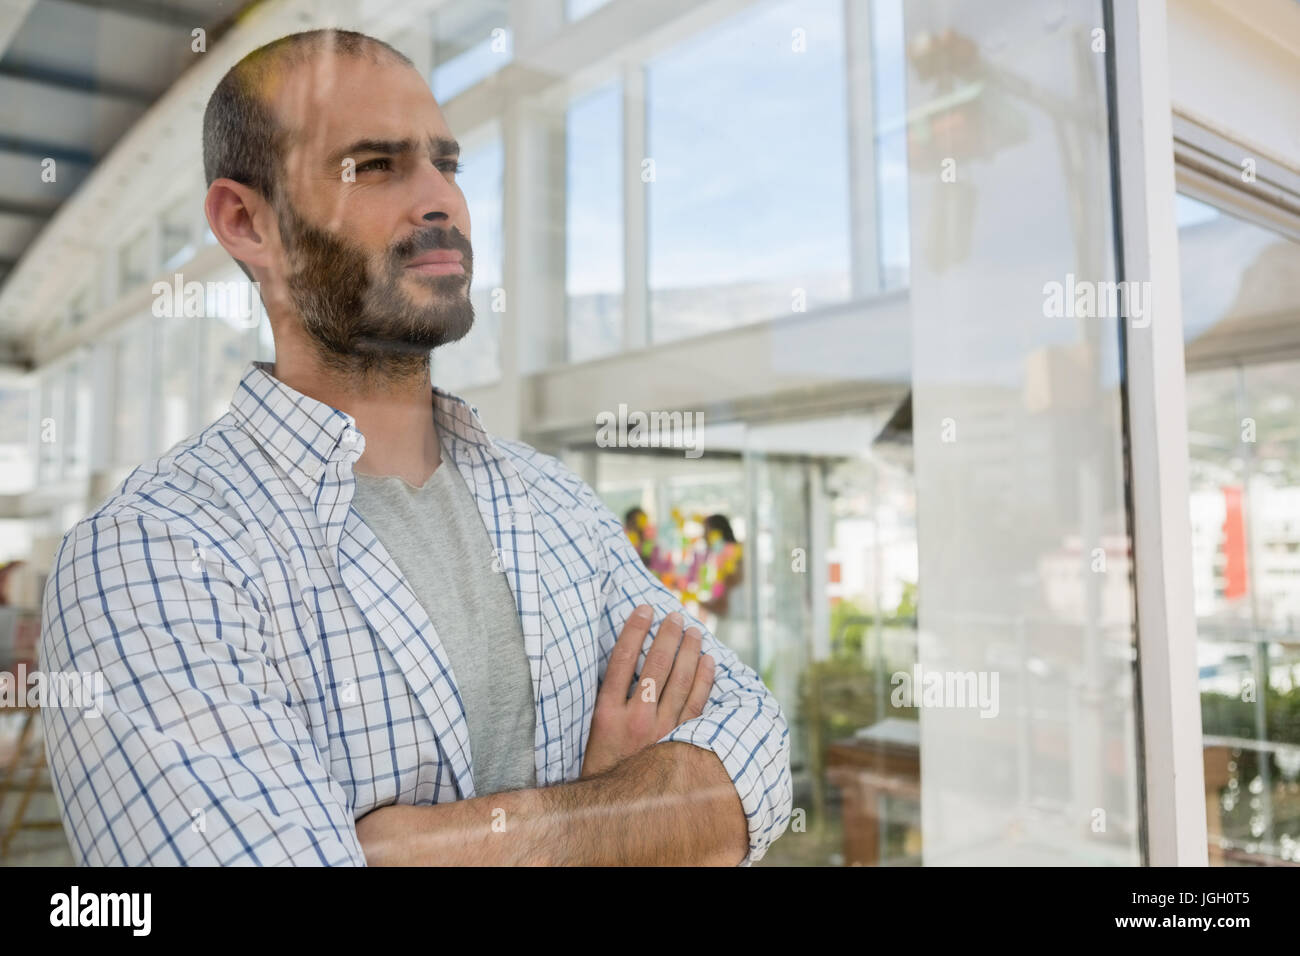 Thoughtful designer with arms crossed looking through window seen through glass - Stock Image